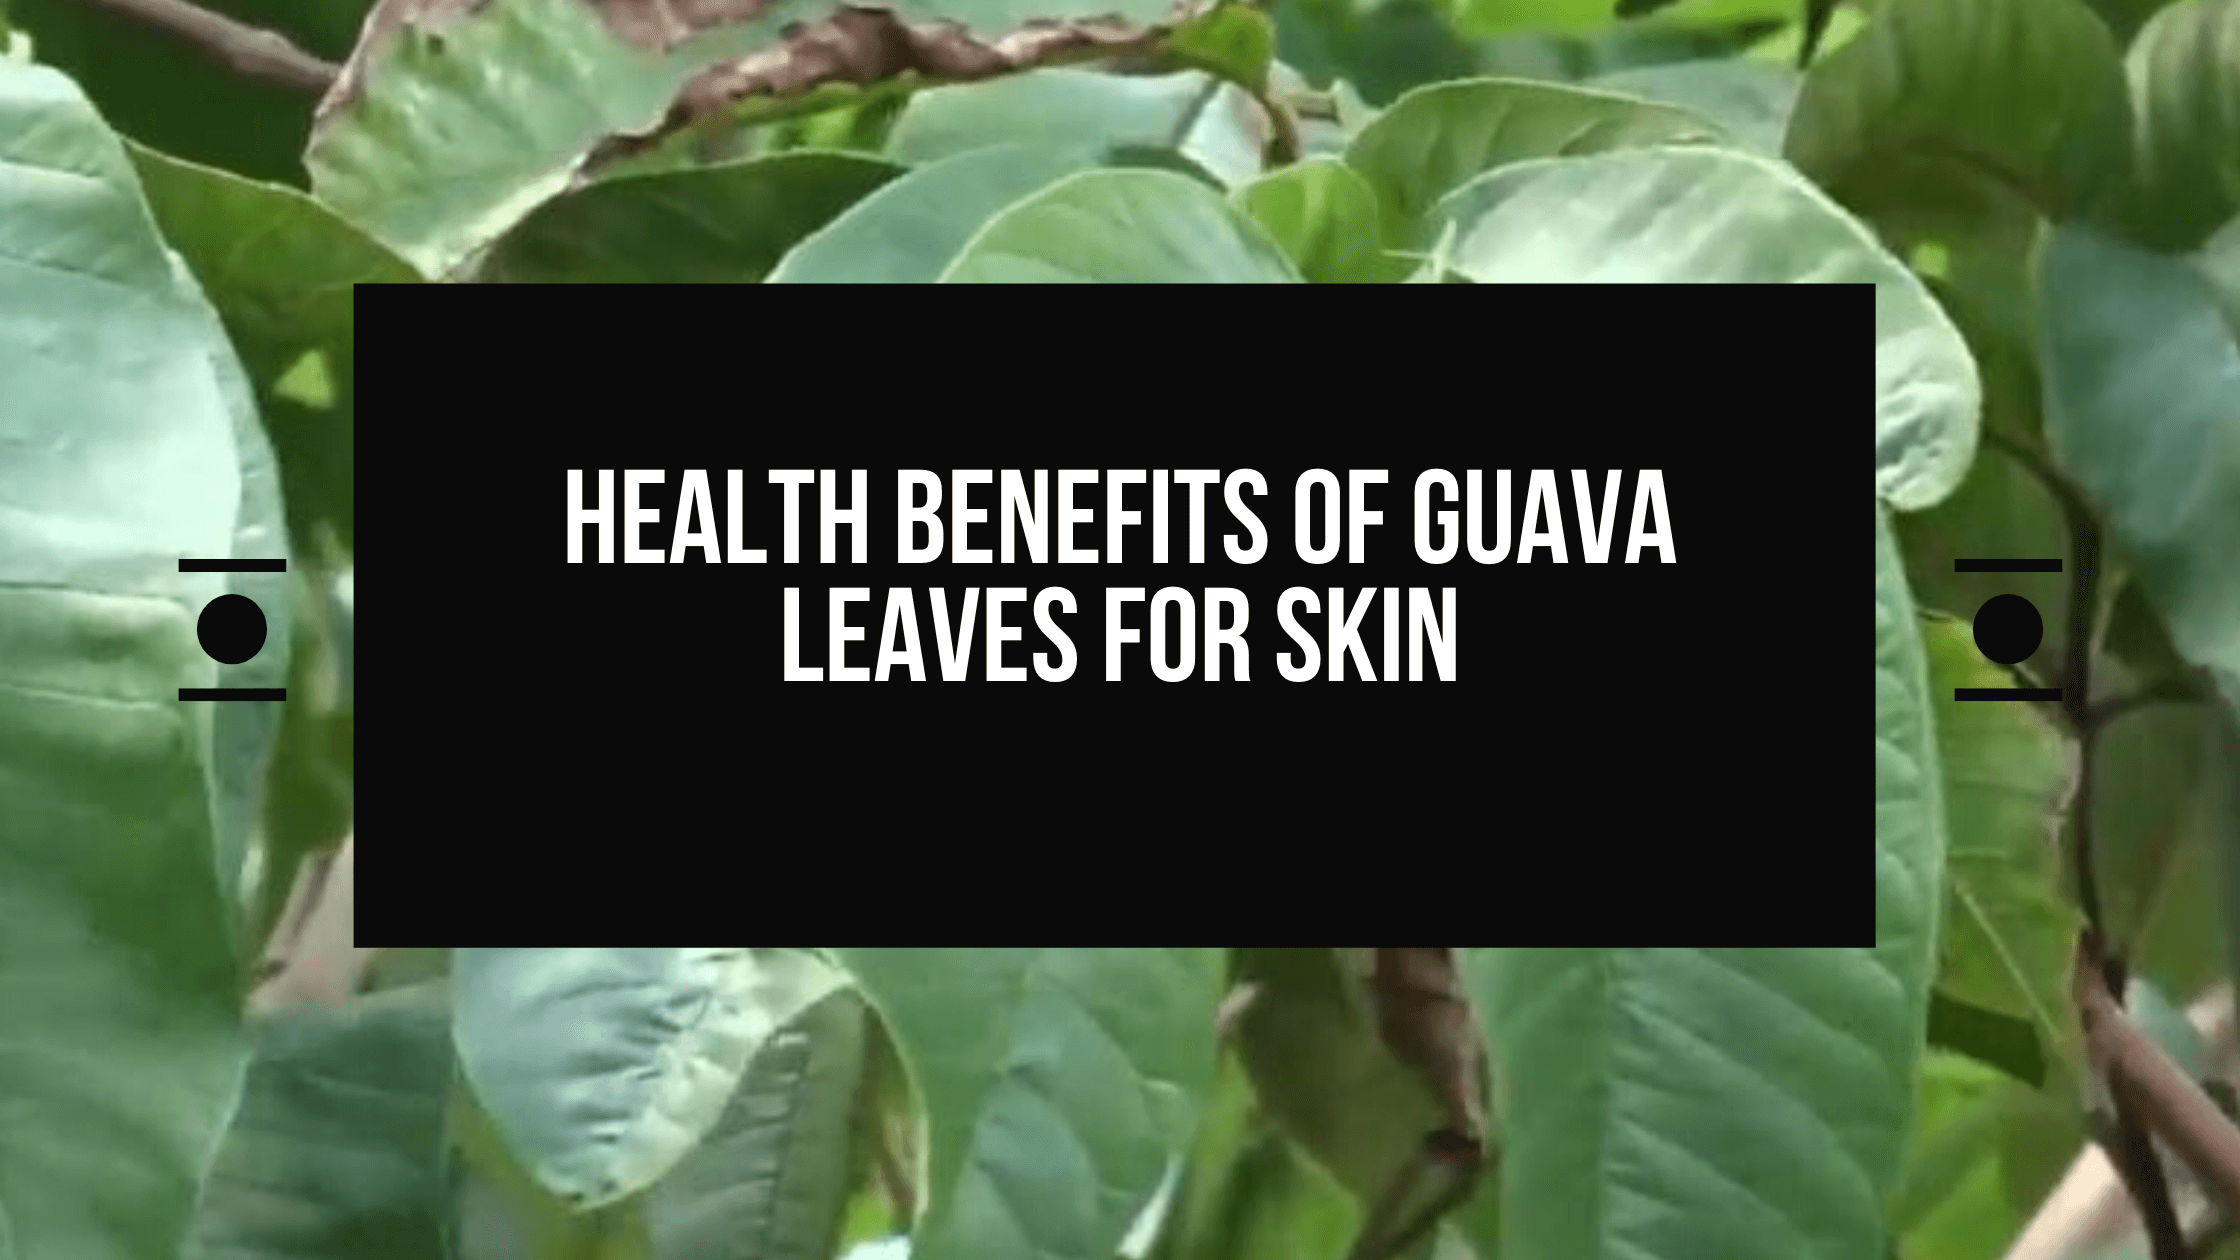 health benefits of guava leaves for skin